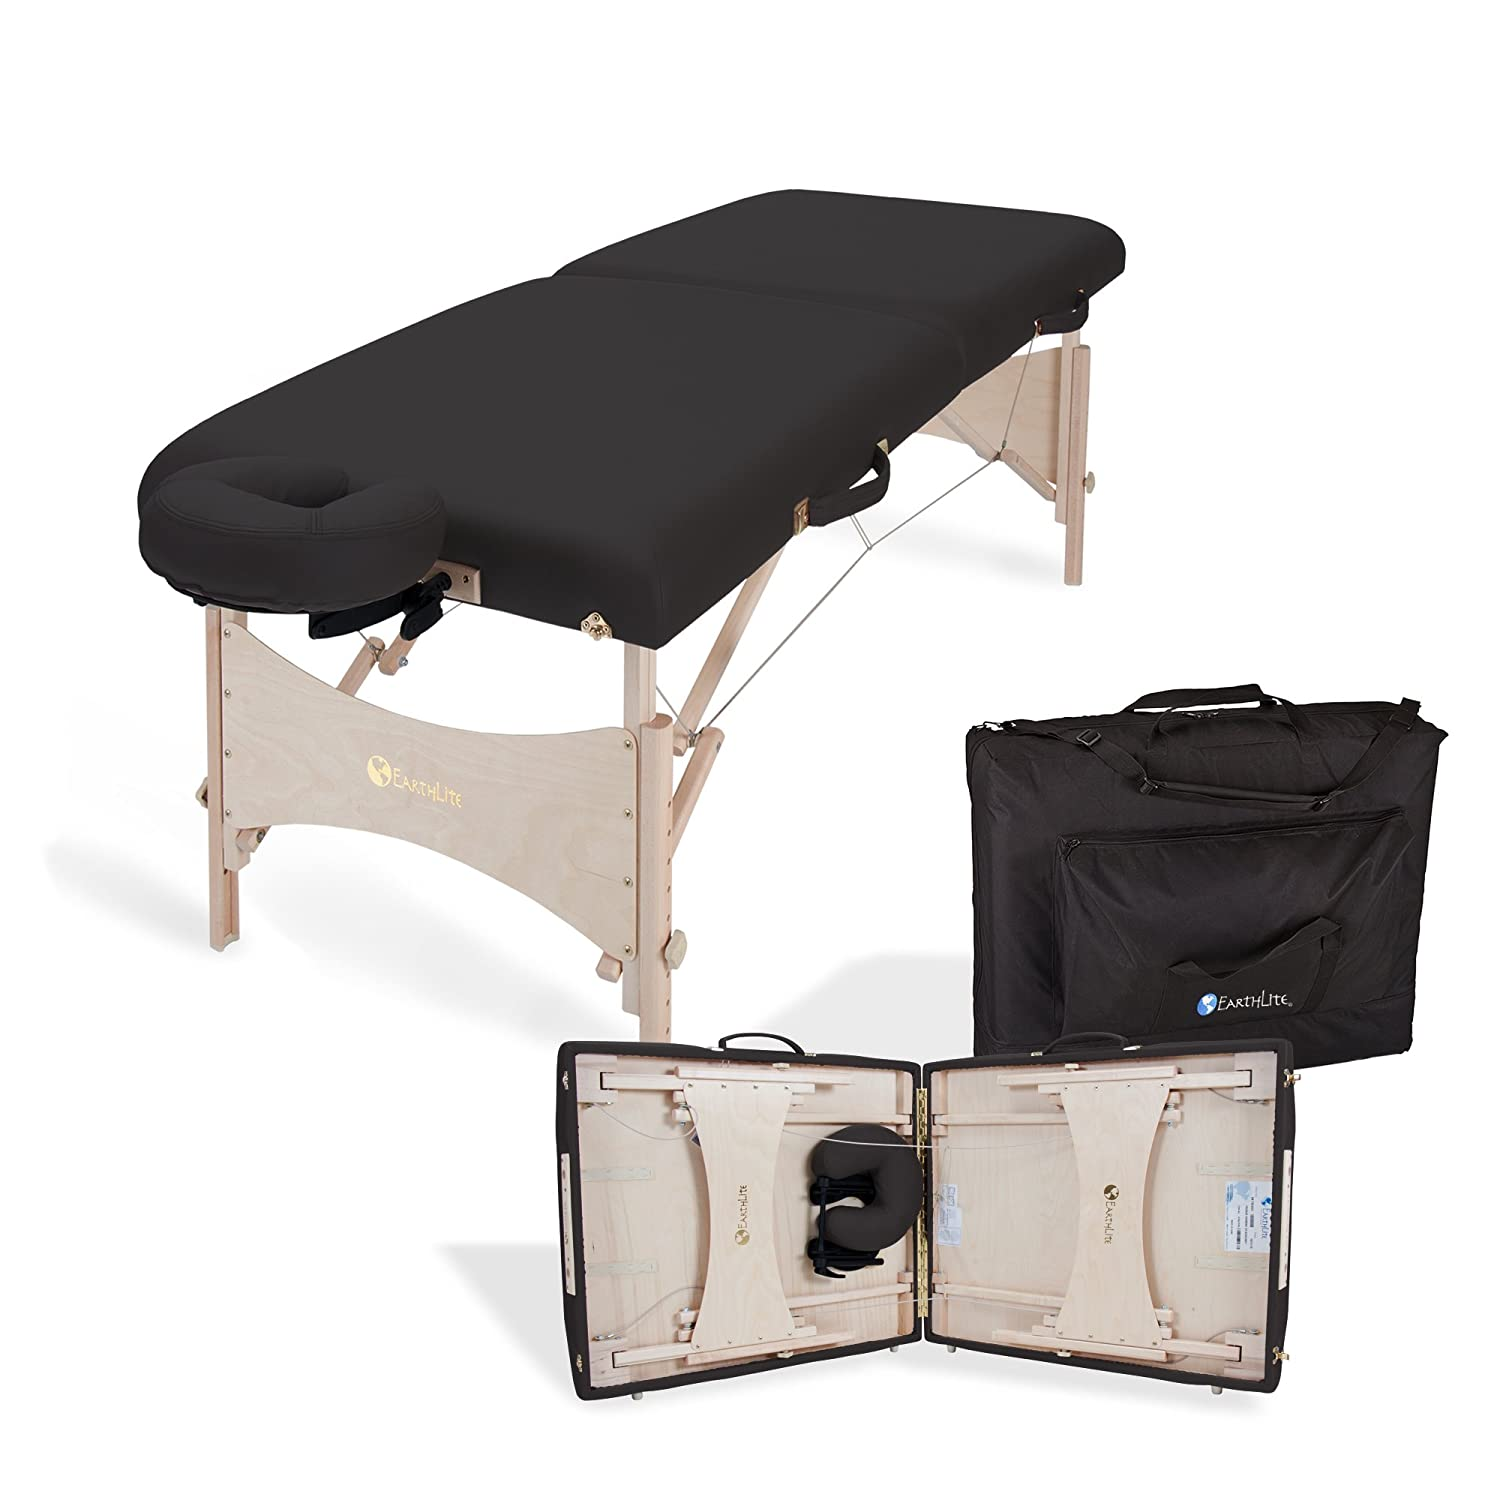 "EARTHLITE Portable Massage Table Package Harmony DX – Eco-Friendly Design, Superior Comfort, Deluxe Adjustable Face Cradle, Carry Case (30"" x 73"")"